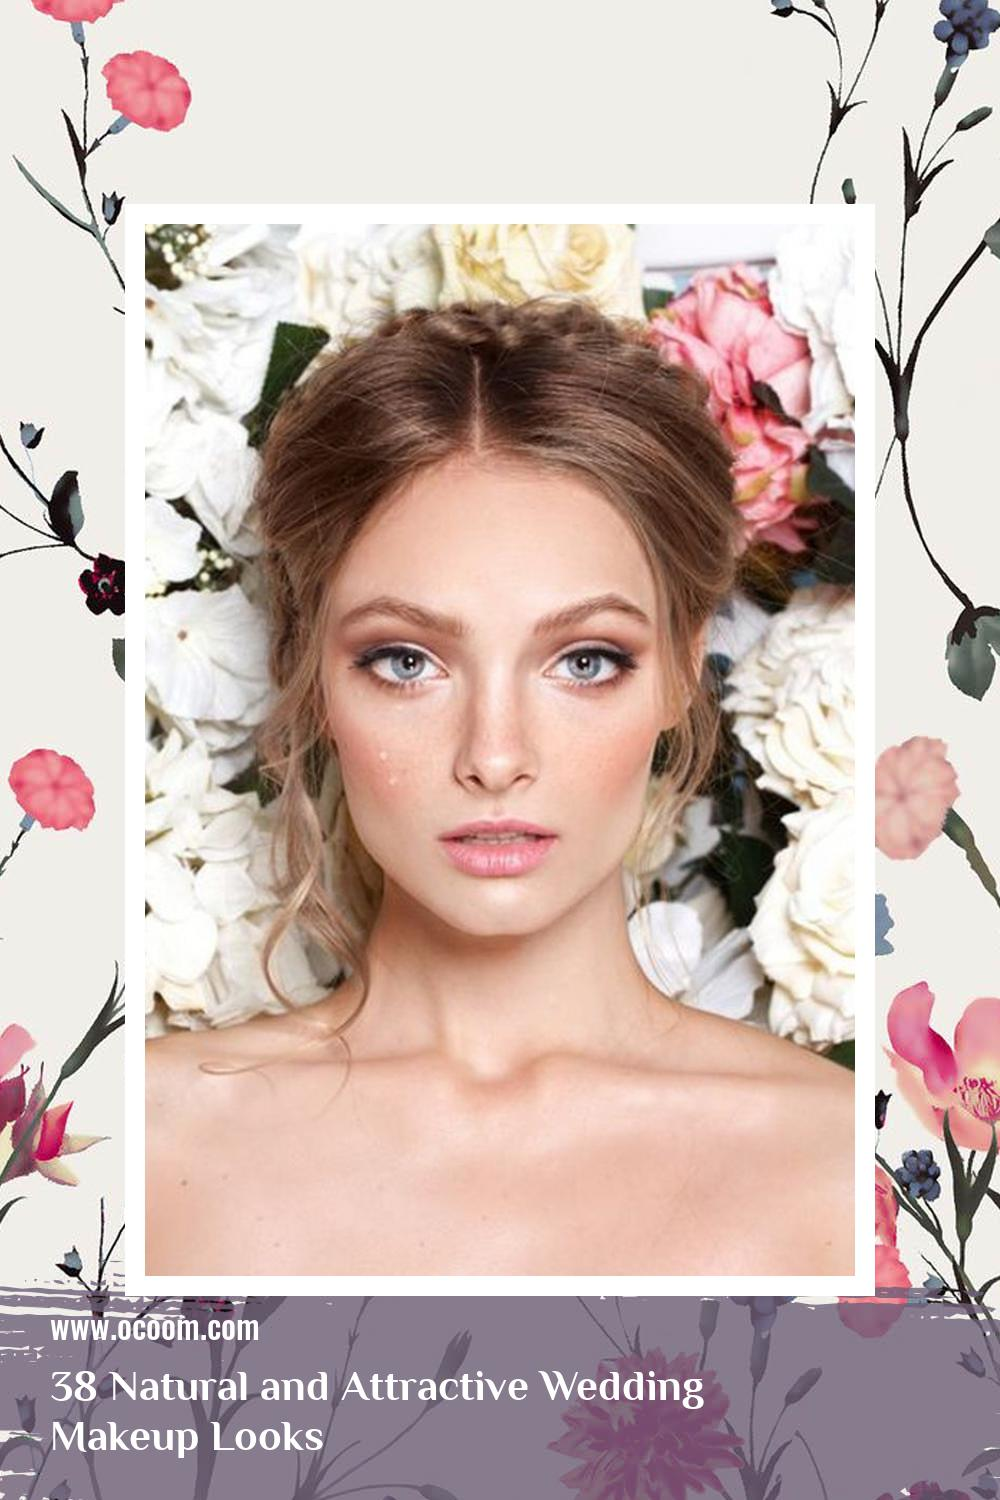 38 Natural and Attractive Wedding Makeup Looks 3